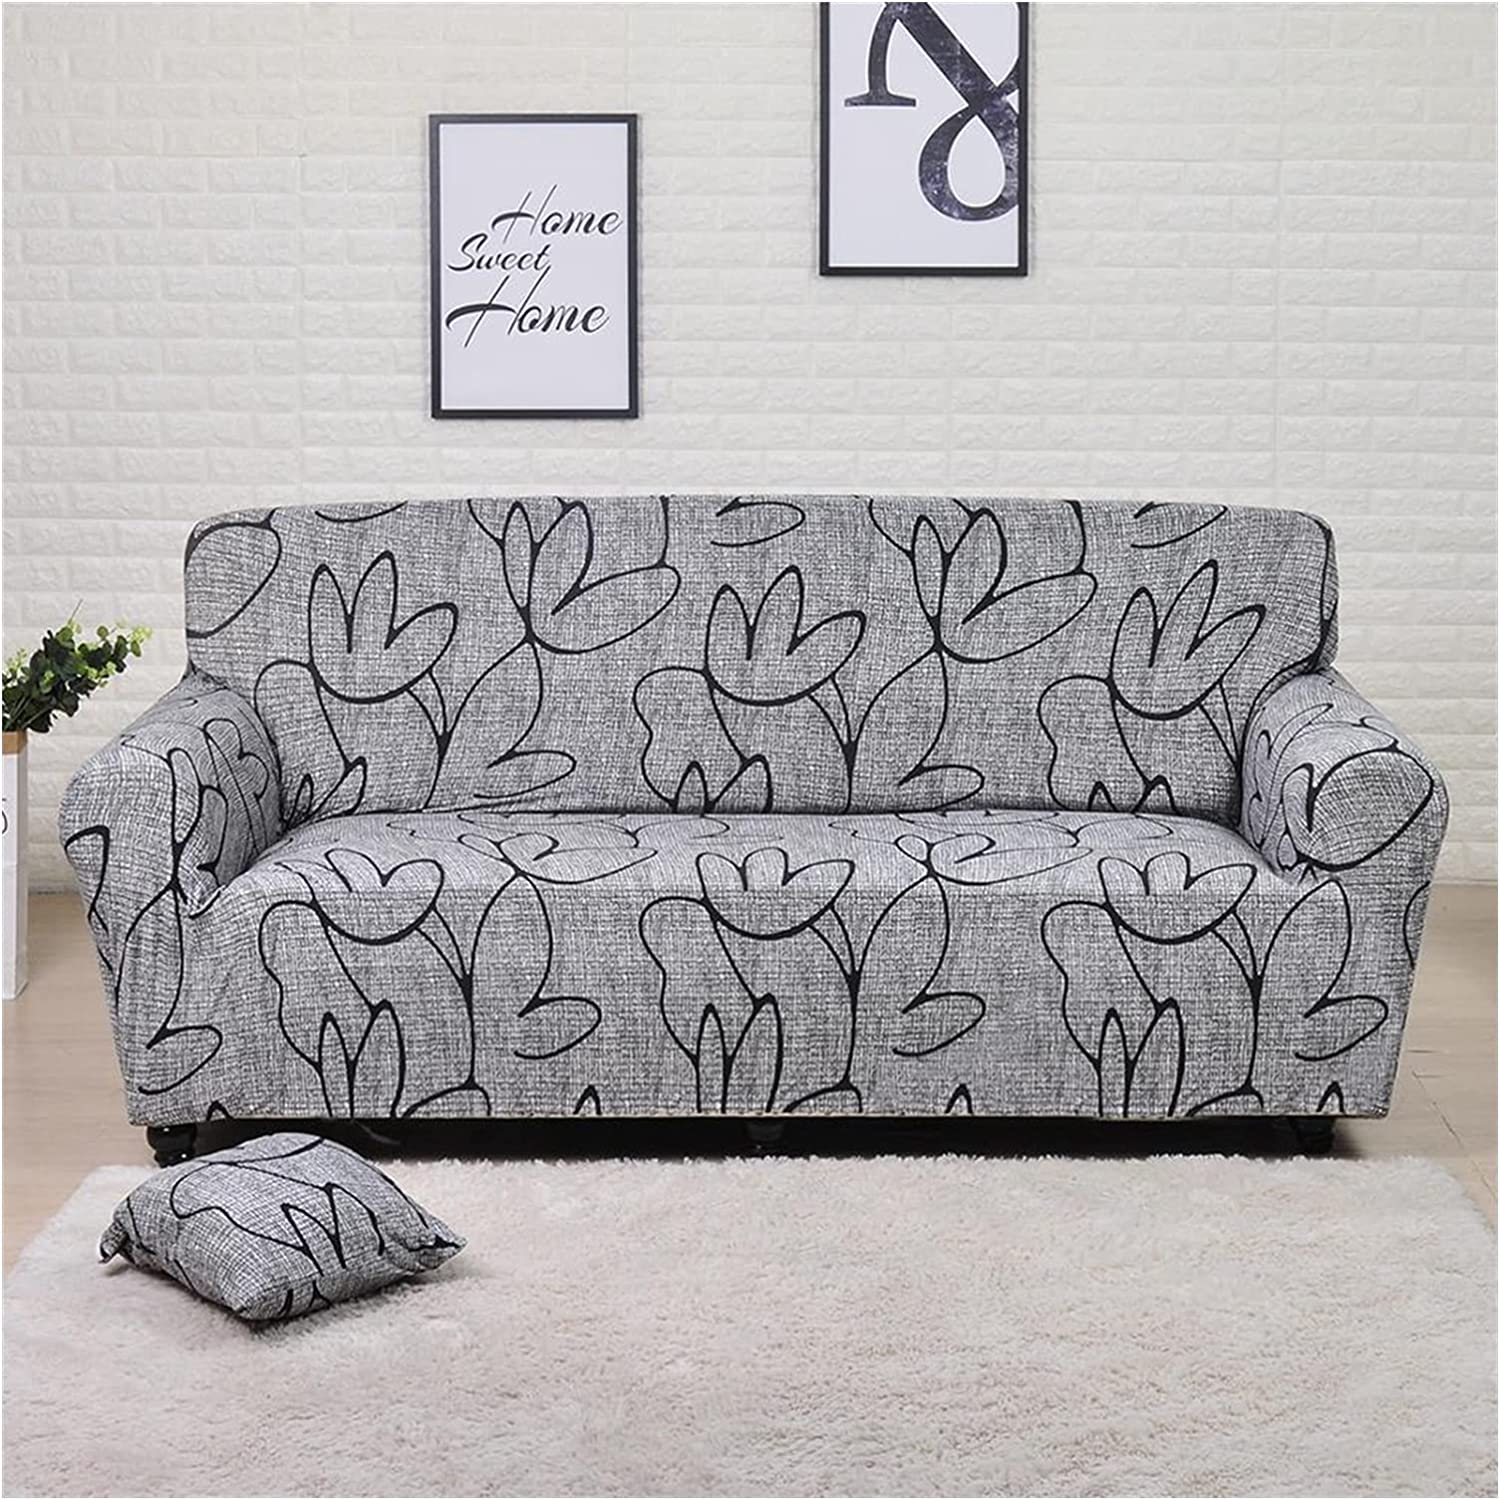 XIAOLI Couch Cover Sofa 55% OFF Covers Elastic Leaves and Flowers ! Super beauty product restock quality top!